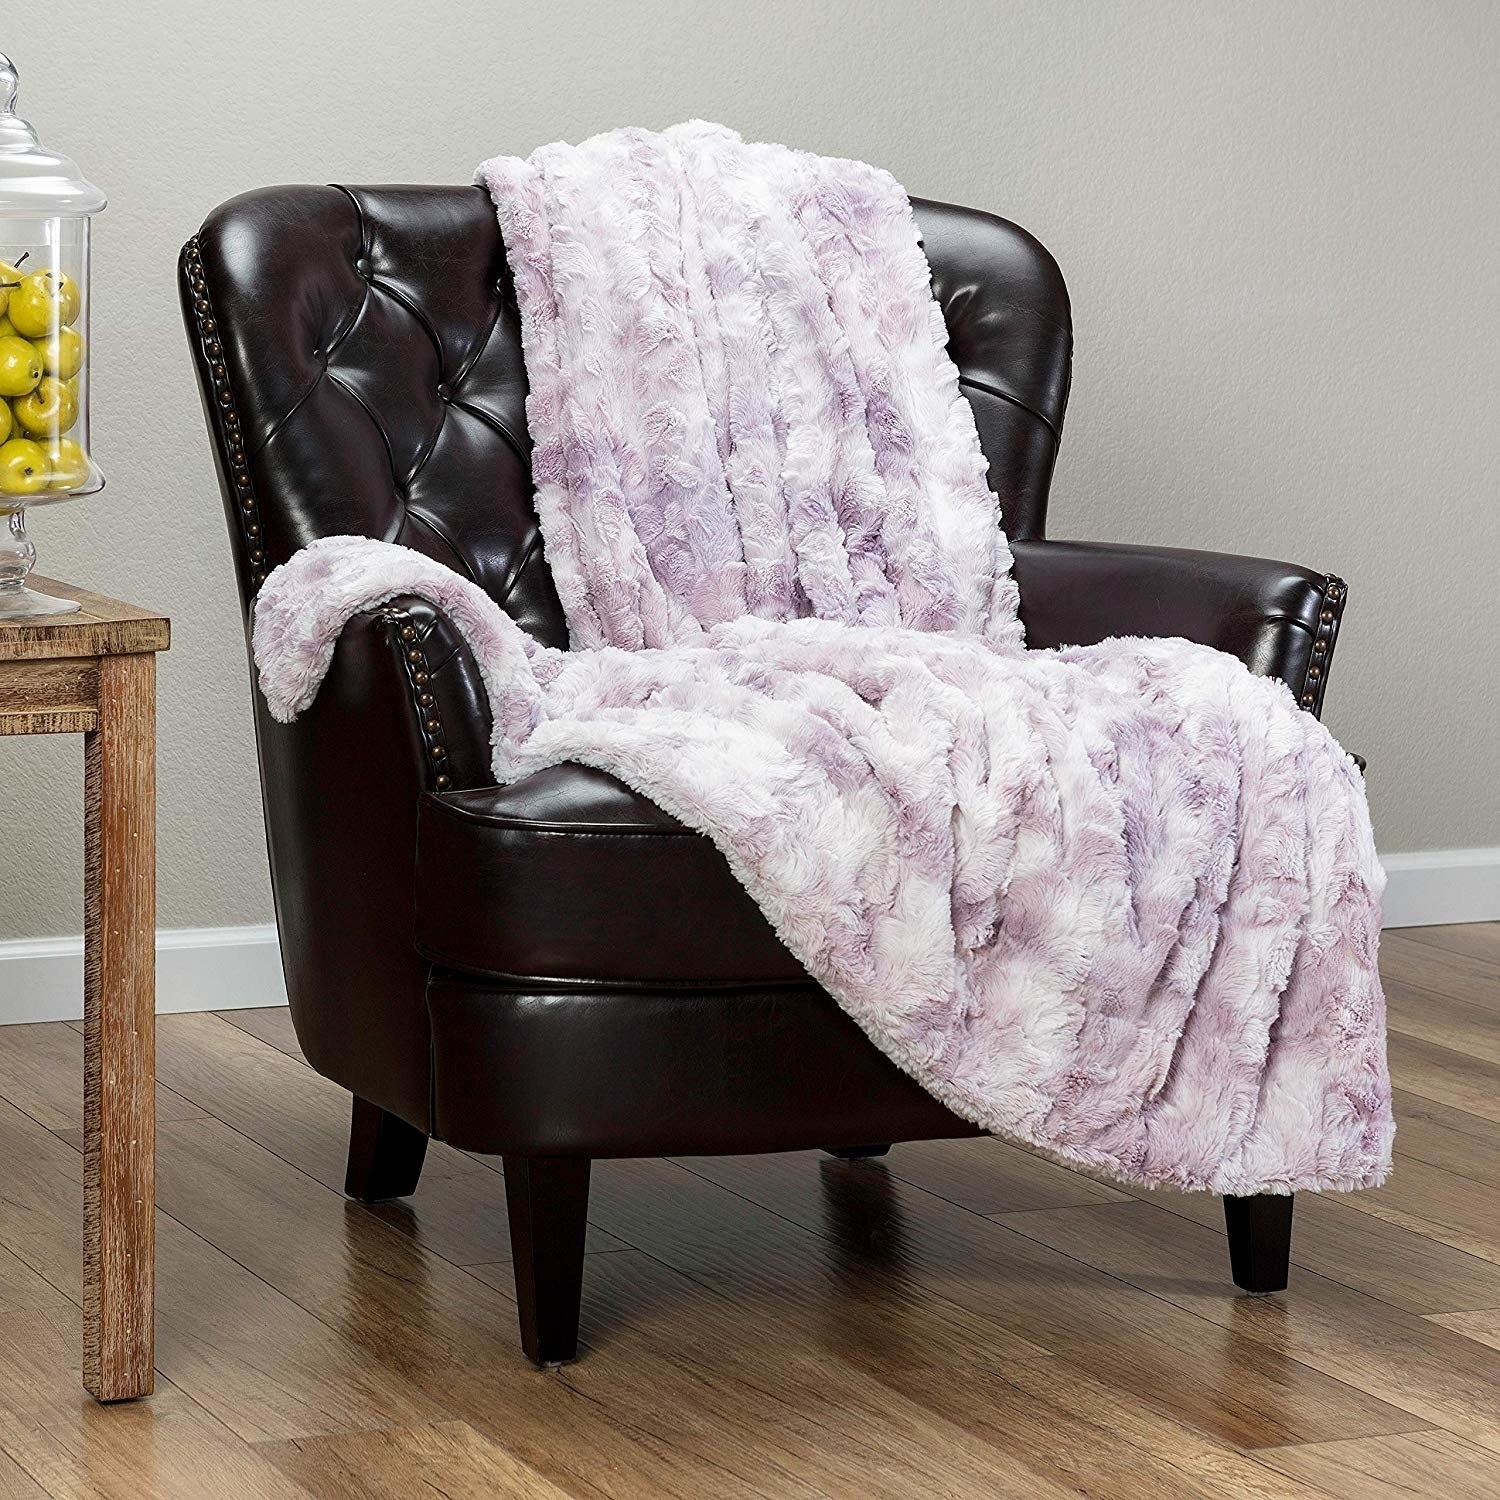 a pink faux fur throw blanket